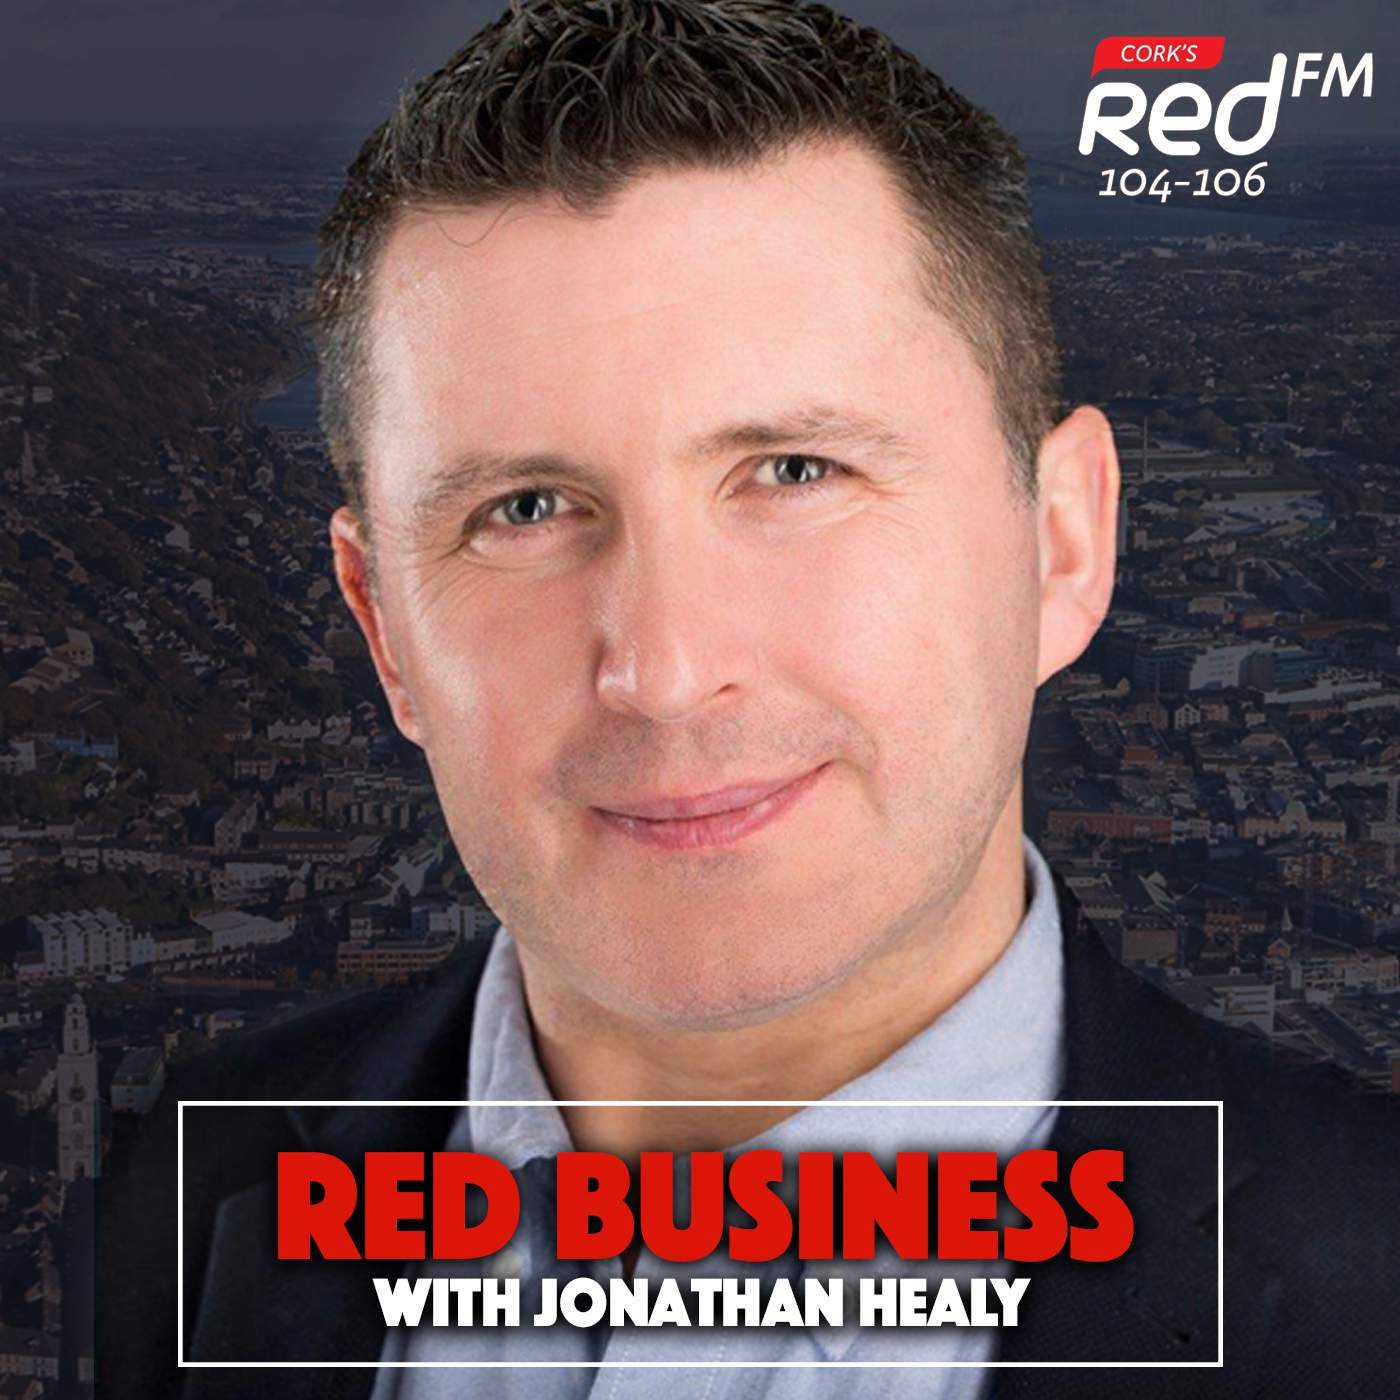 RedBusiness with Jonathan Healy